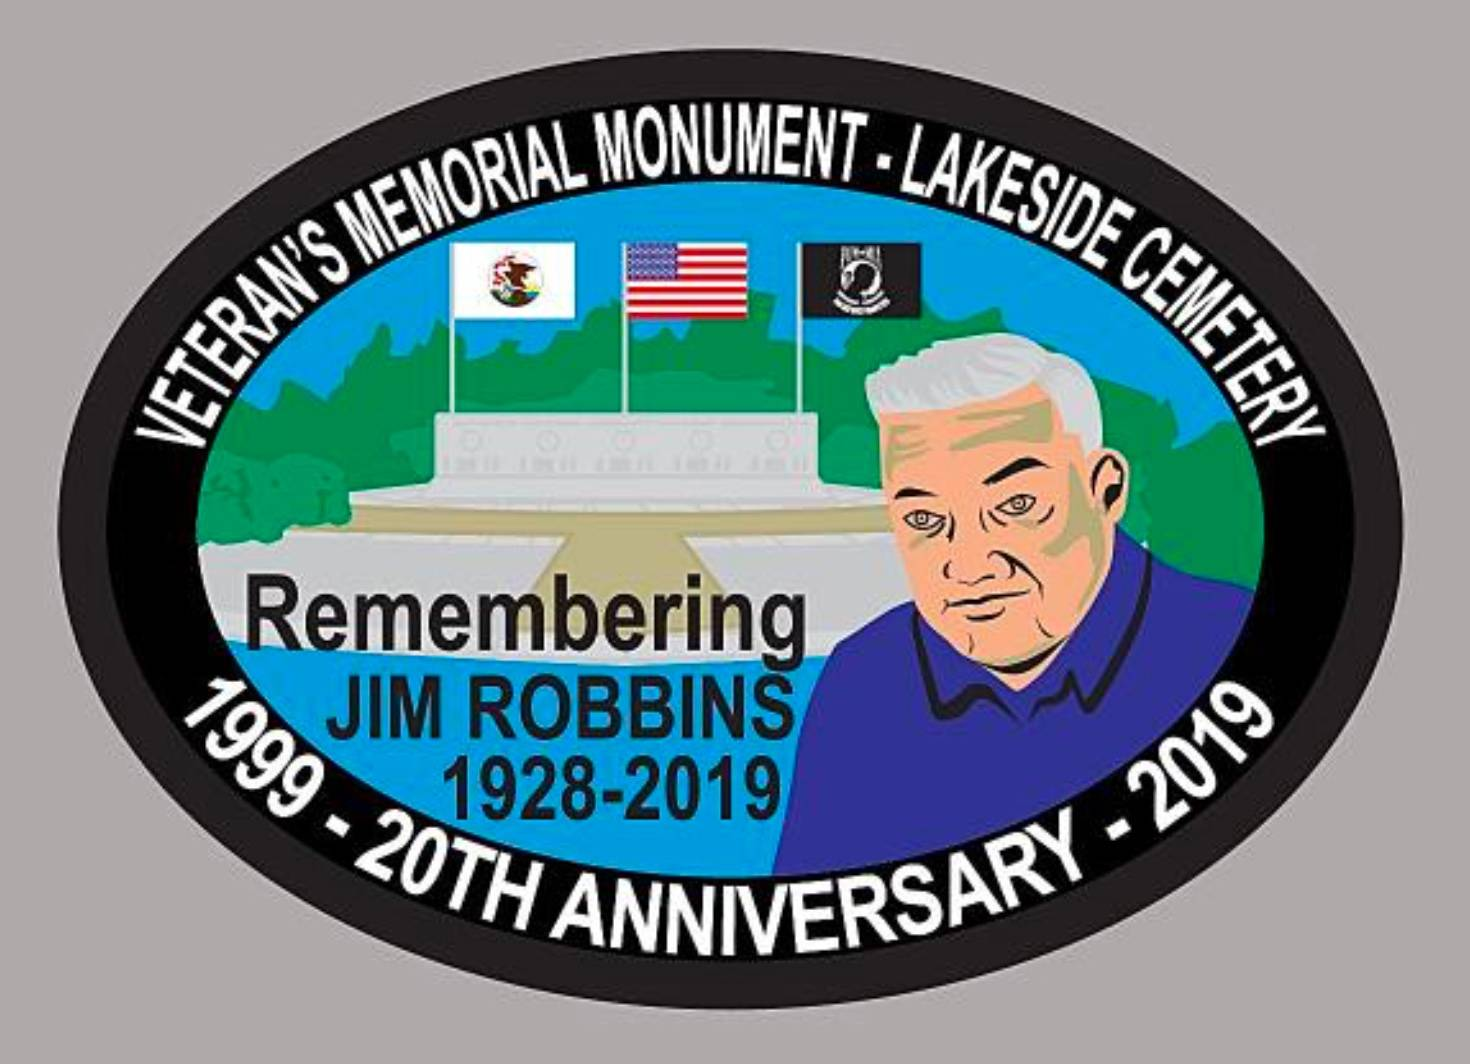 Scouts groups that help place American flags on the graves of veterans at Lakeside Cemetery in Libertyville will receive this patch honoring Jim Robbins, who helped lead the effort to create the Veterans Memorial Monument.